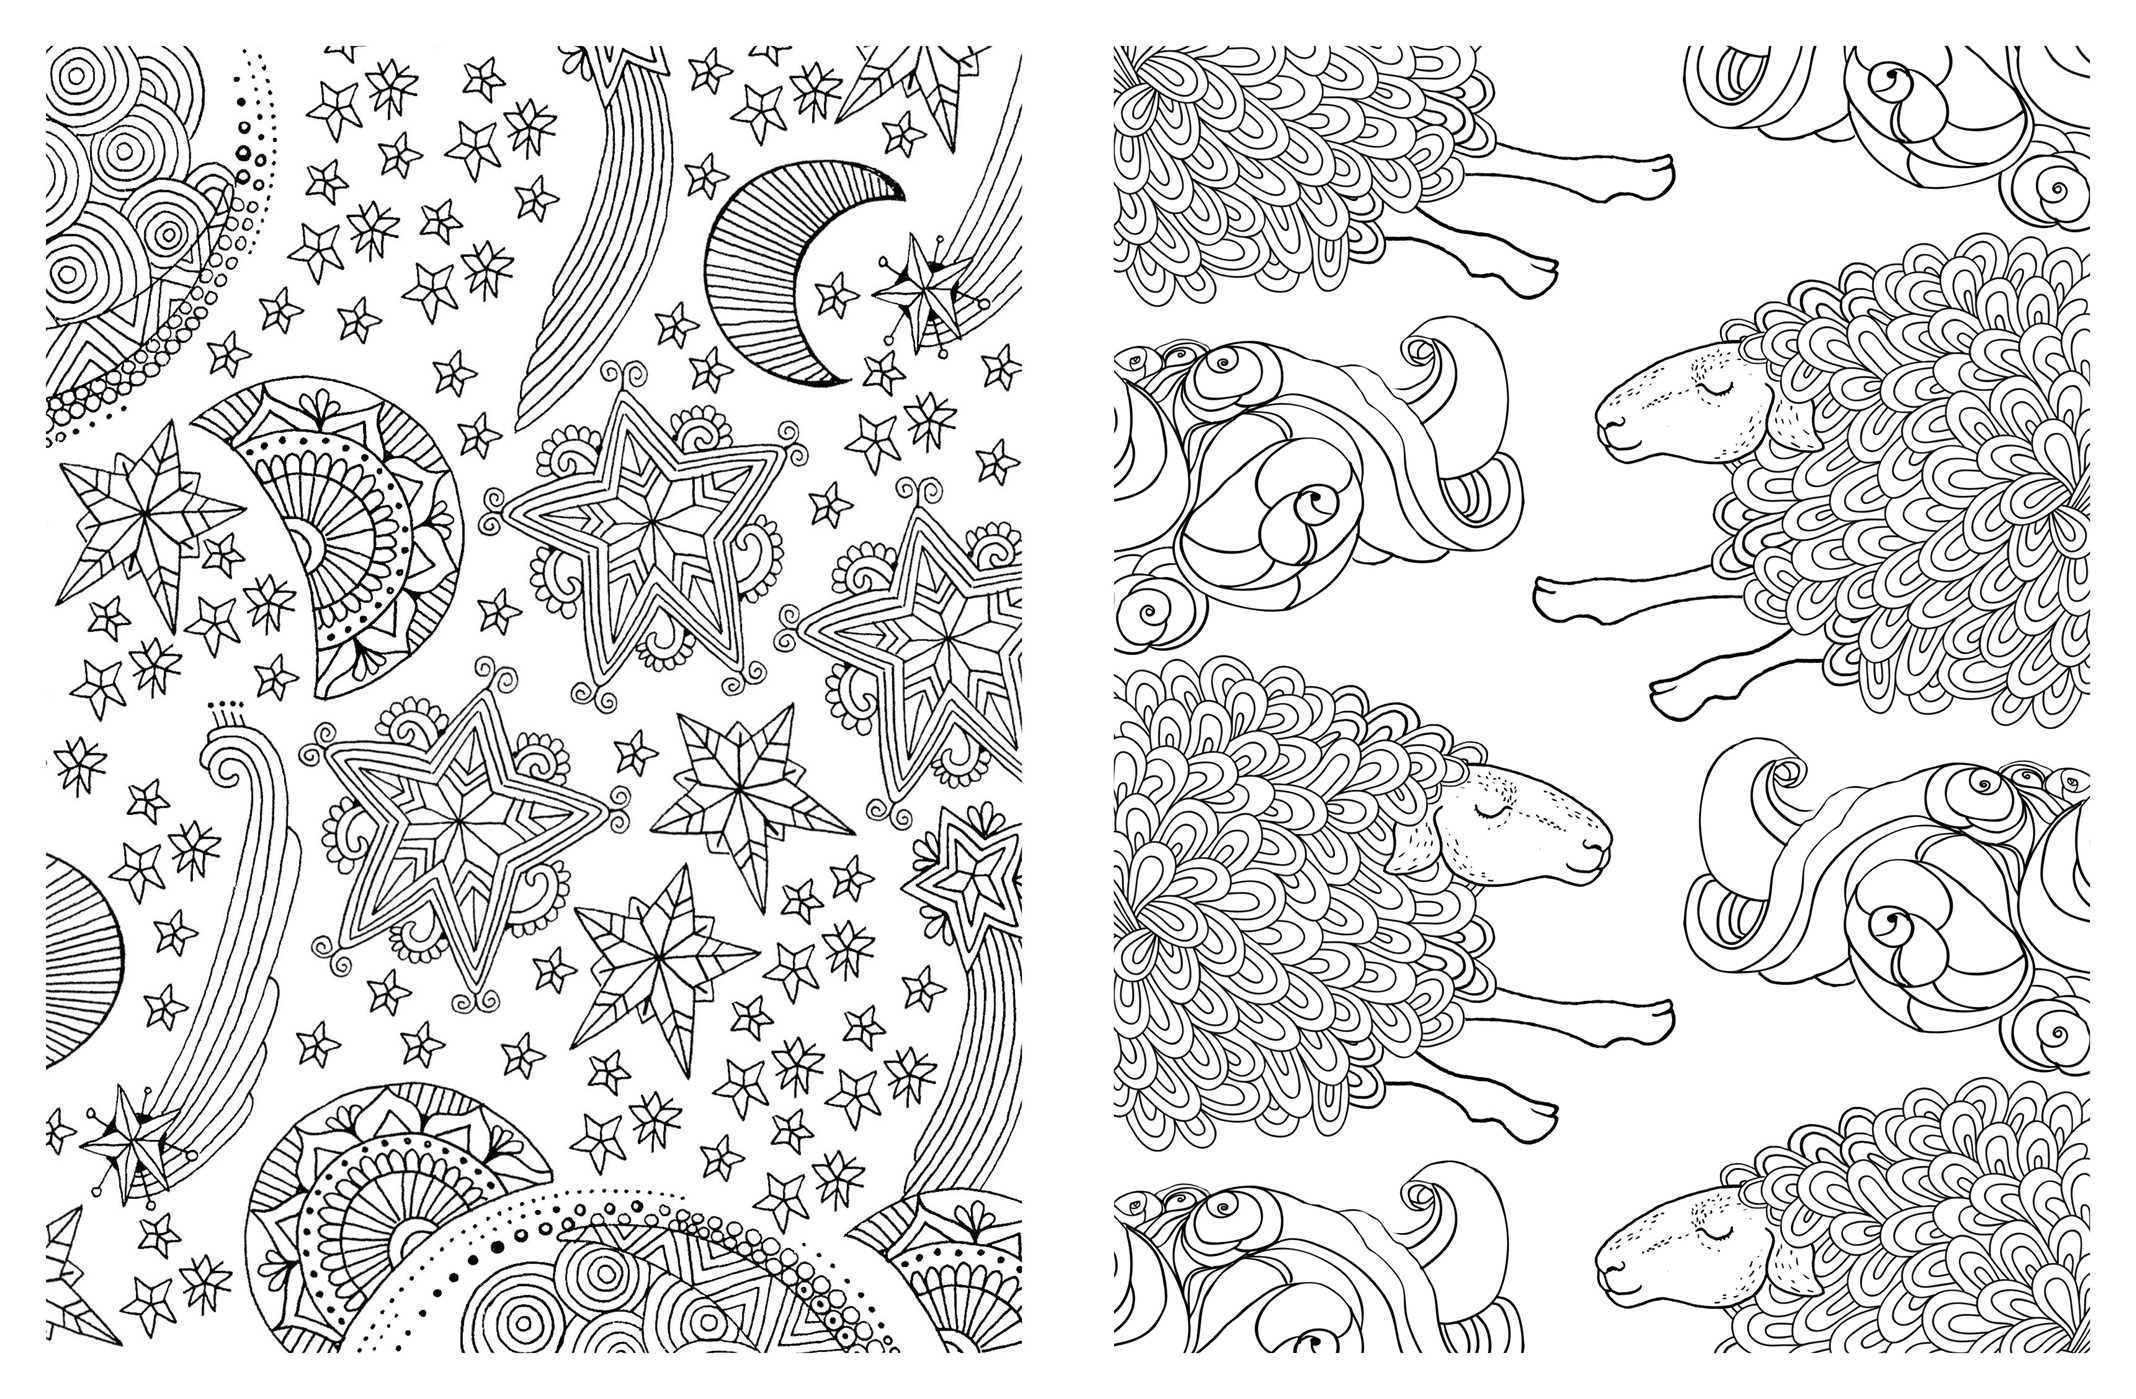 Relax Coloring Download Relax Coloring